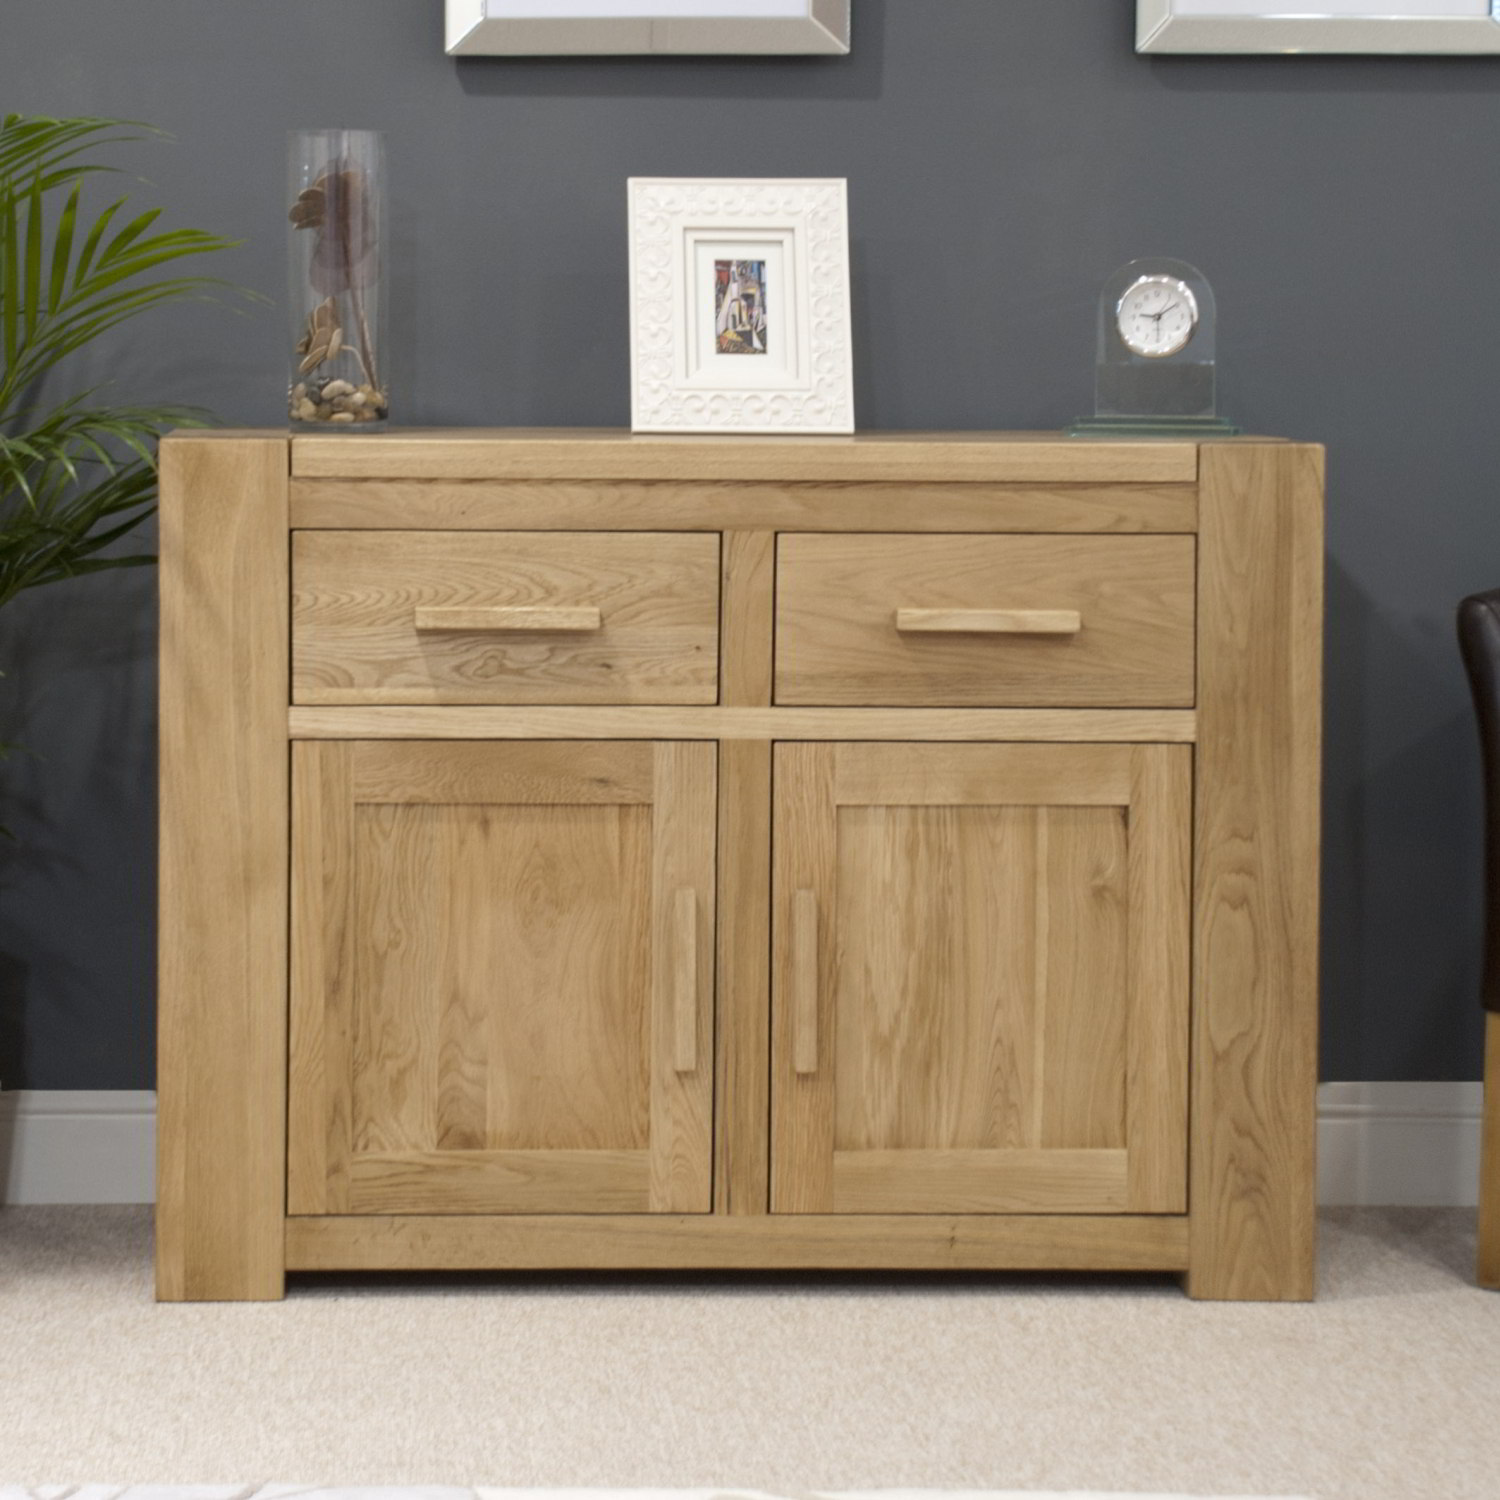 Storage Living Room Furniture: Pemberton Solid Oak Living Room Furniture Medium Storage